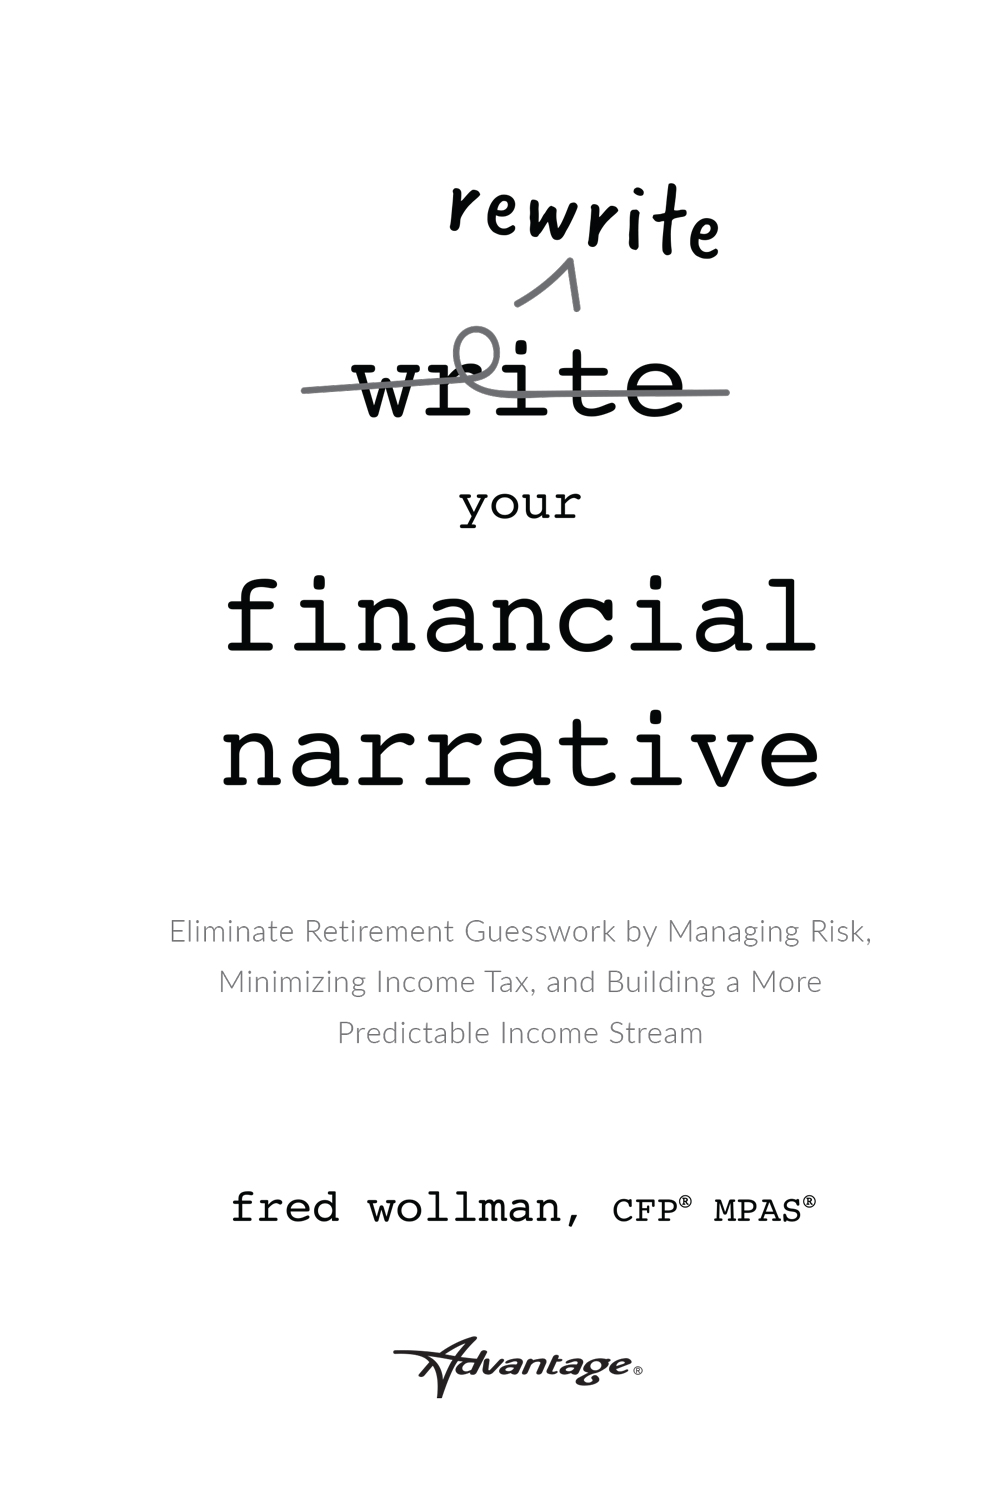 Rewrite_Your_Financial_Narrative_Page_001.jpg